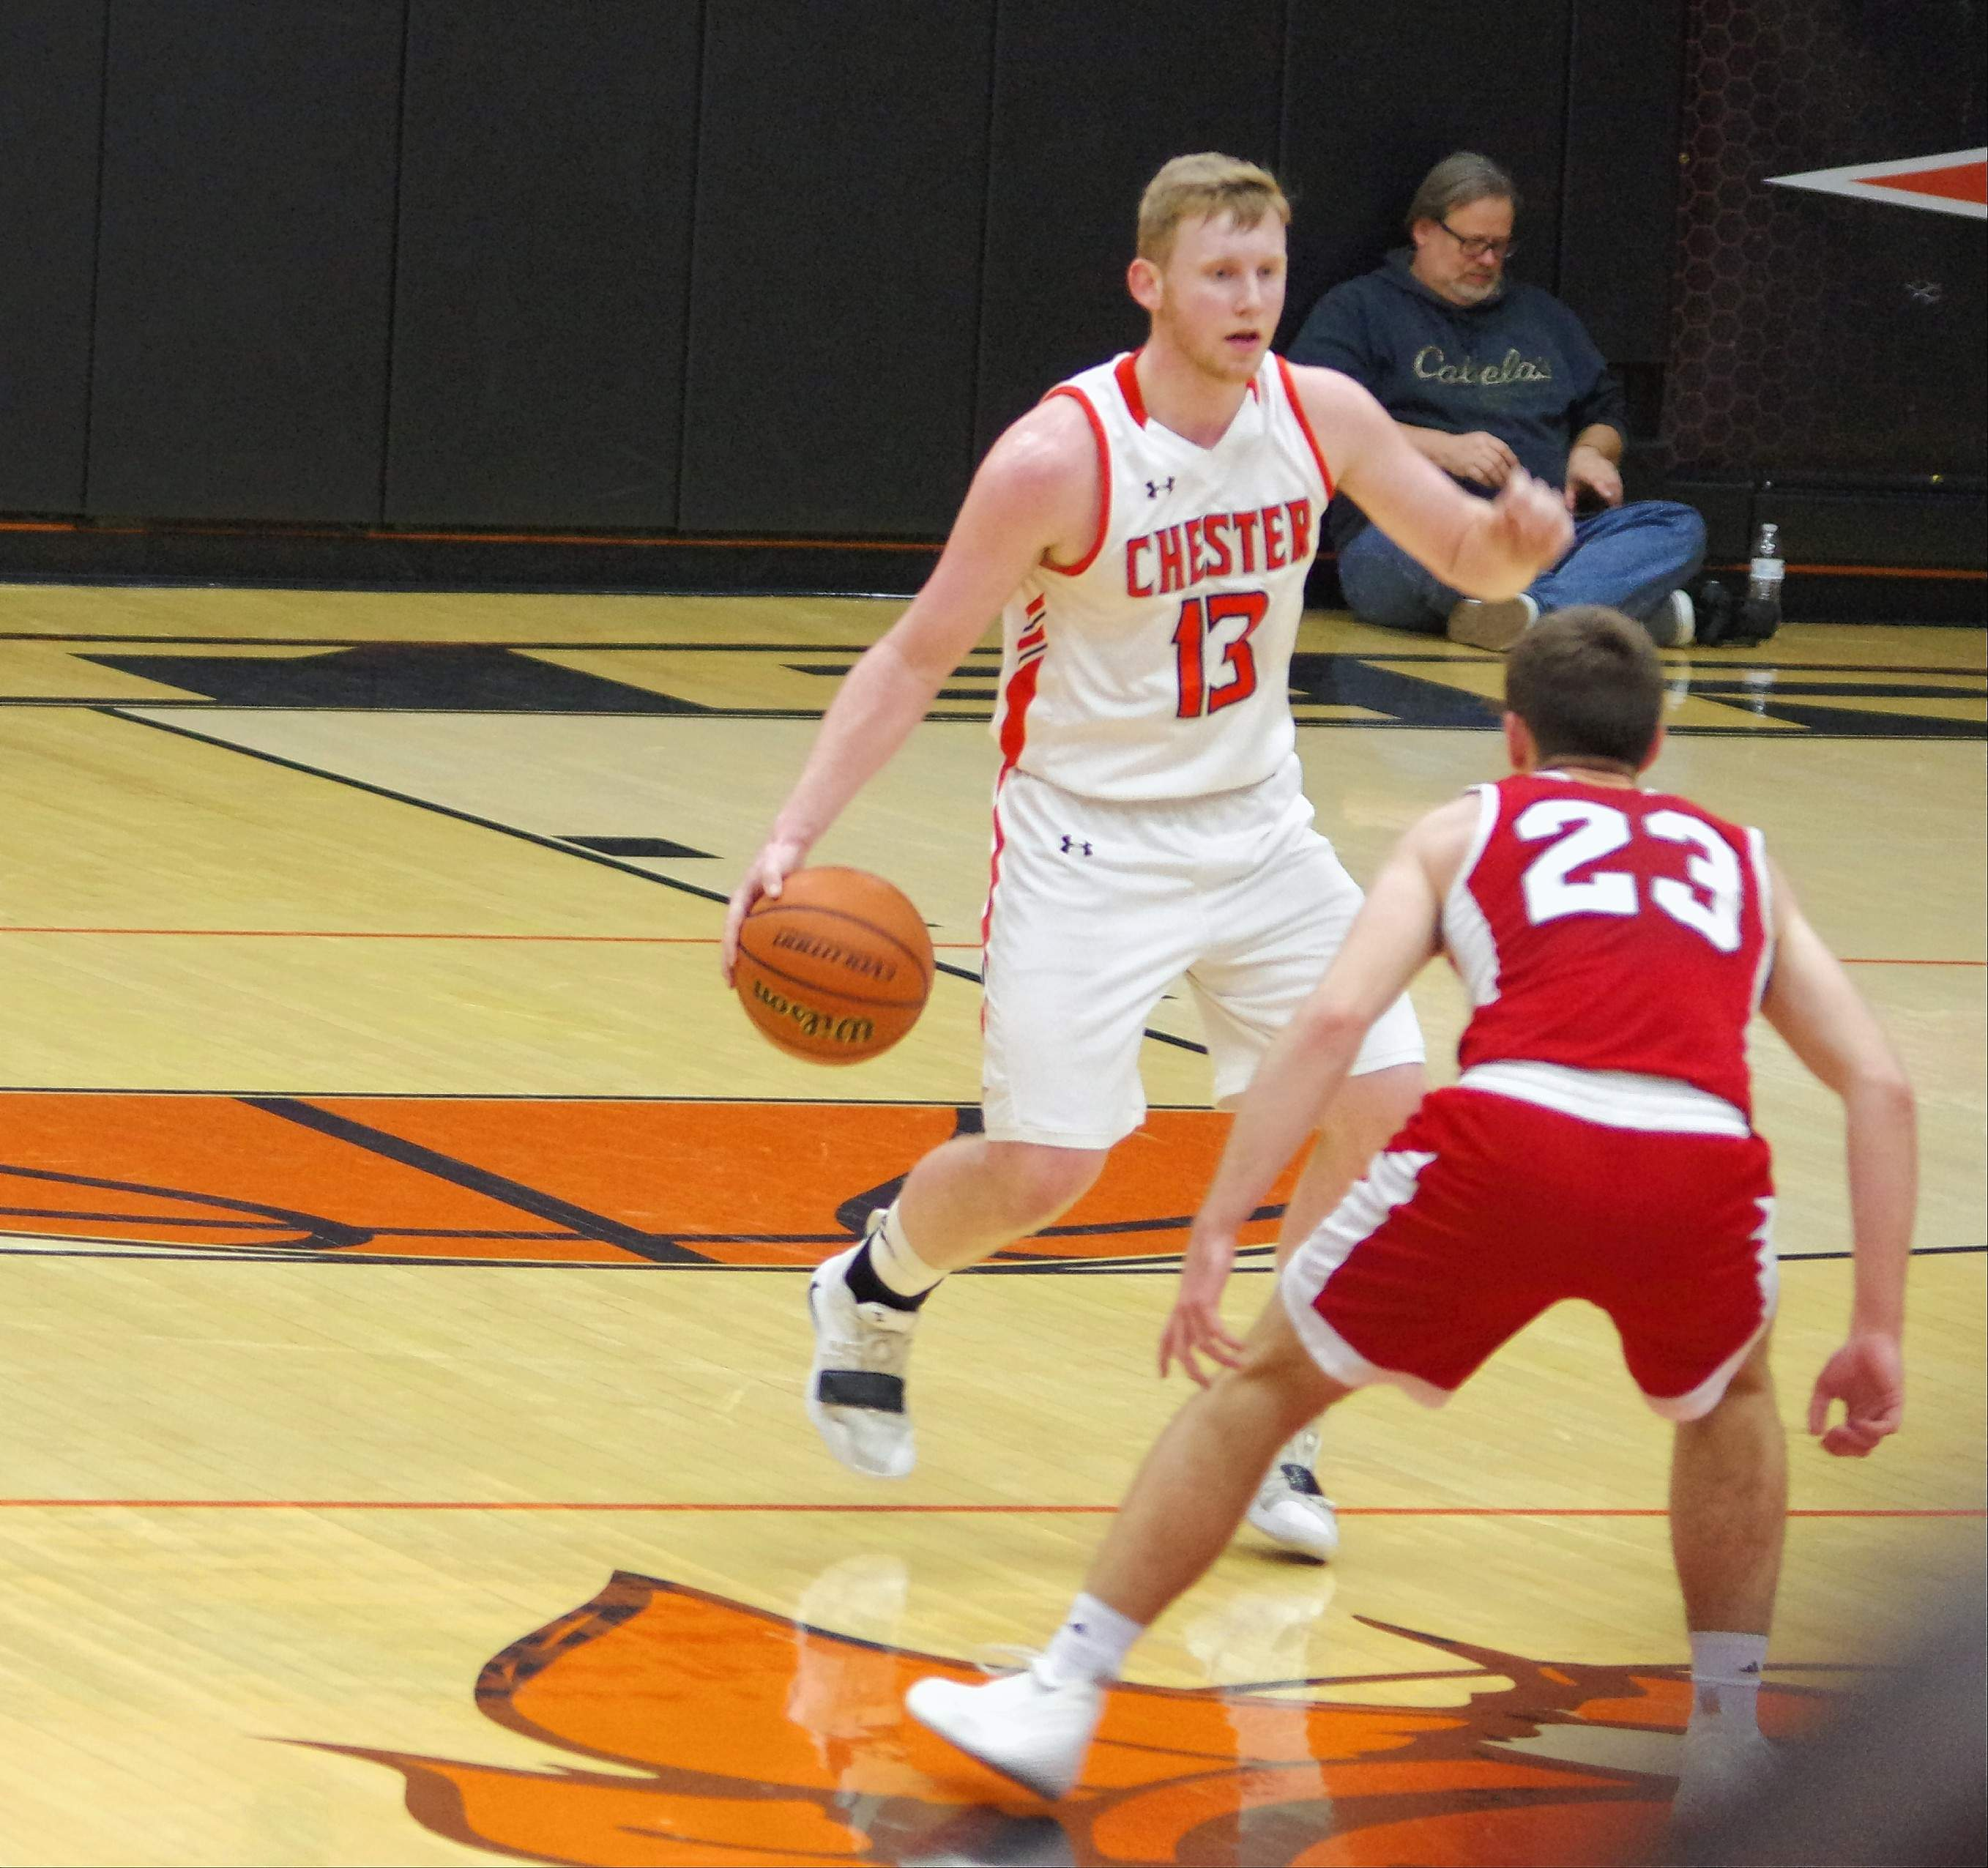 Jakob Cushman, brings the ball across the half-court line and is met by Redbird Kyle Hummers.